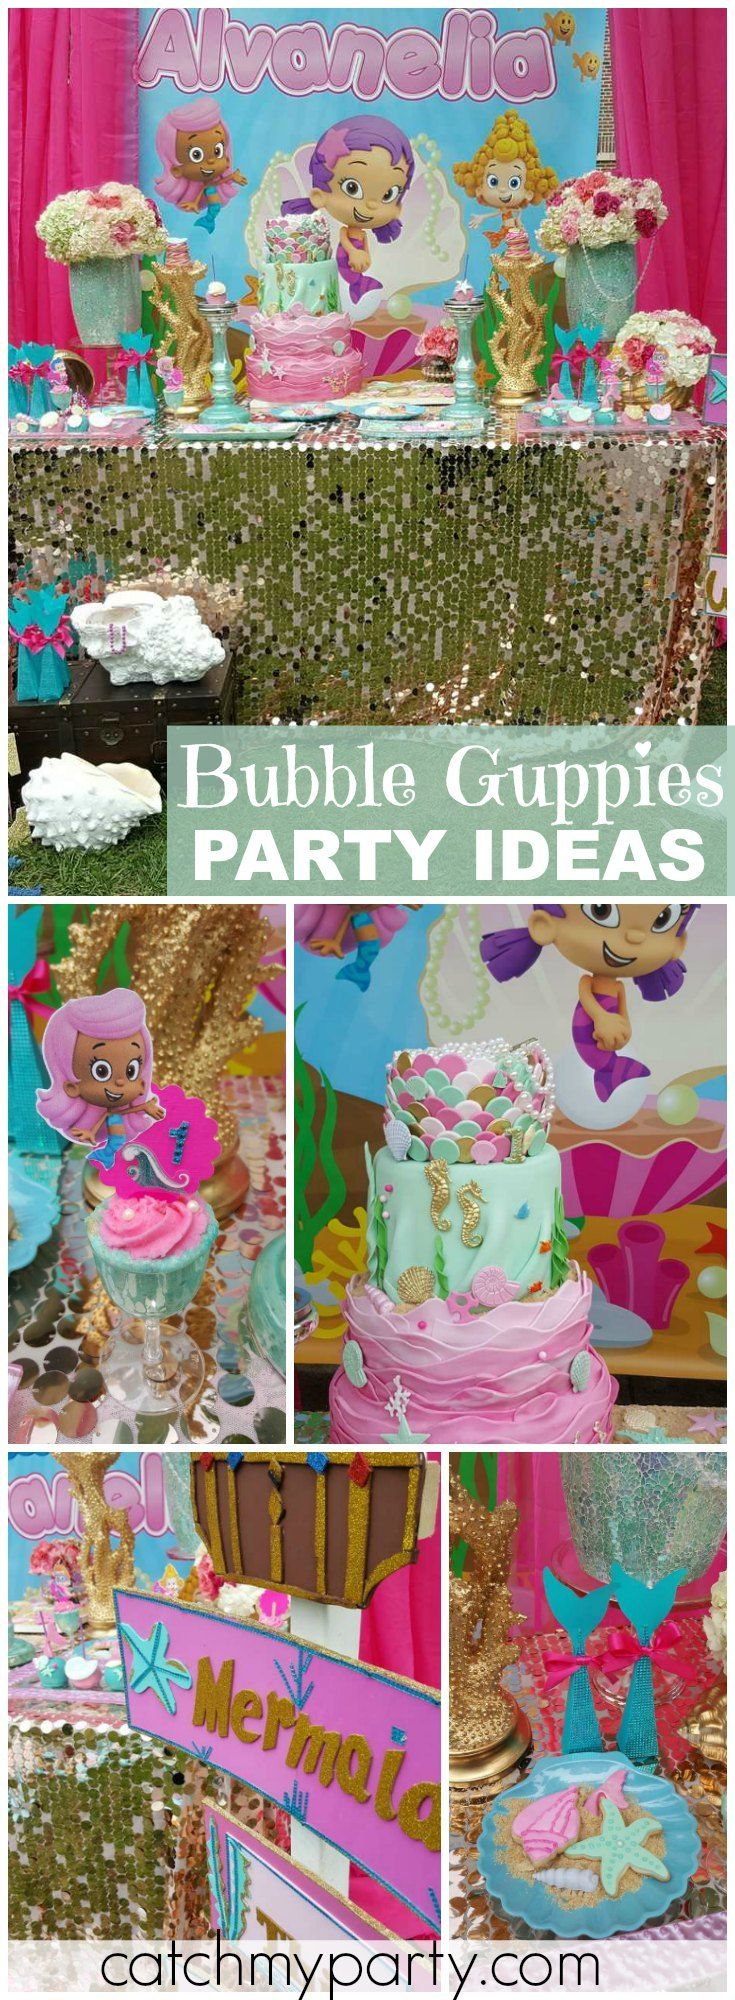 The 25 best bubble guppies decorations ideas on pinterest a whimsical under the sea soiree along side with bubble guppies see more party ideas amipublicfo Images